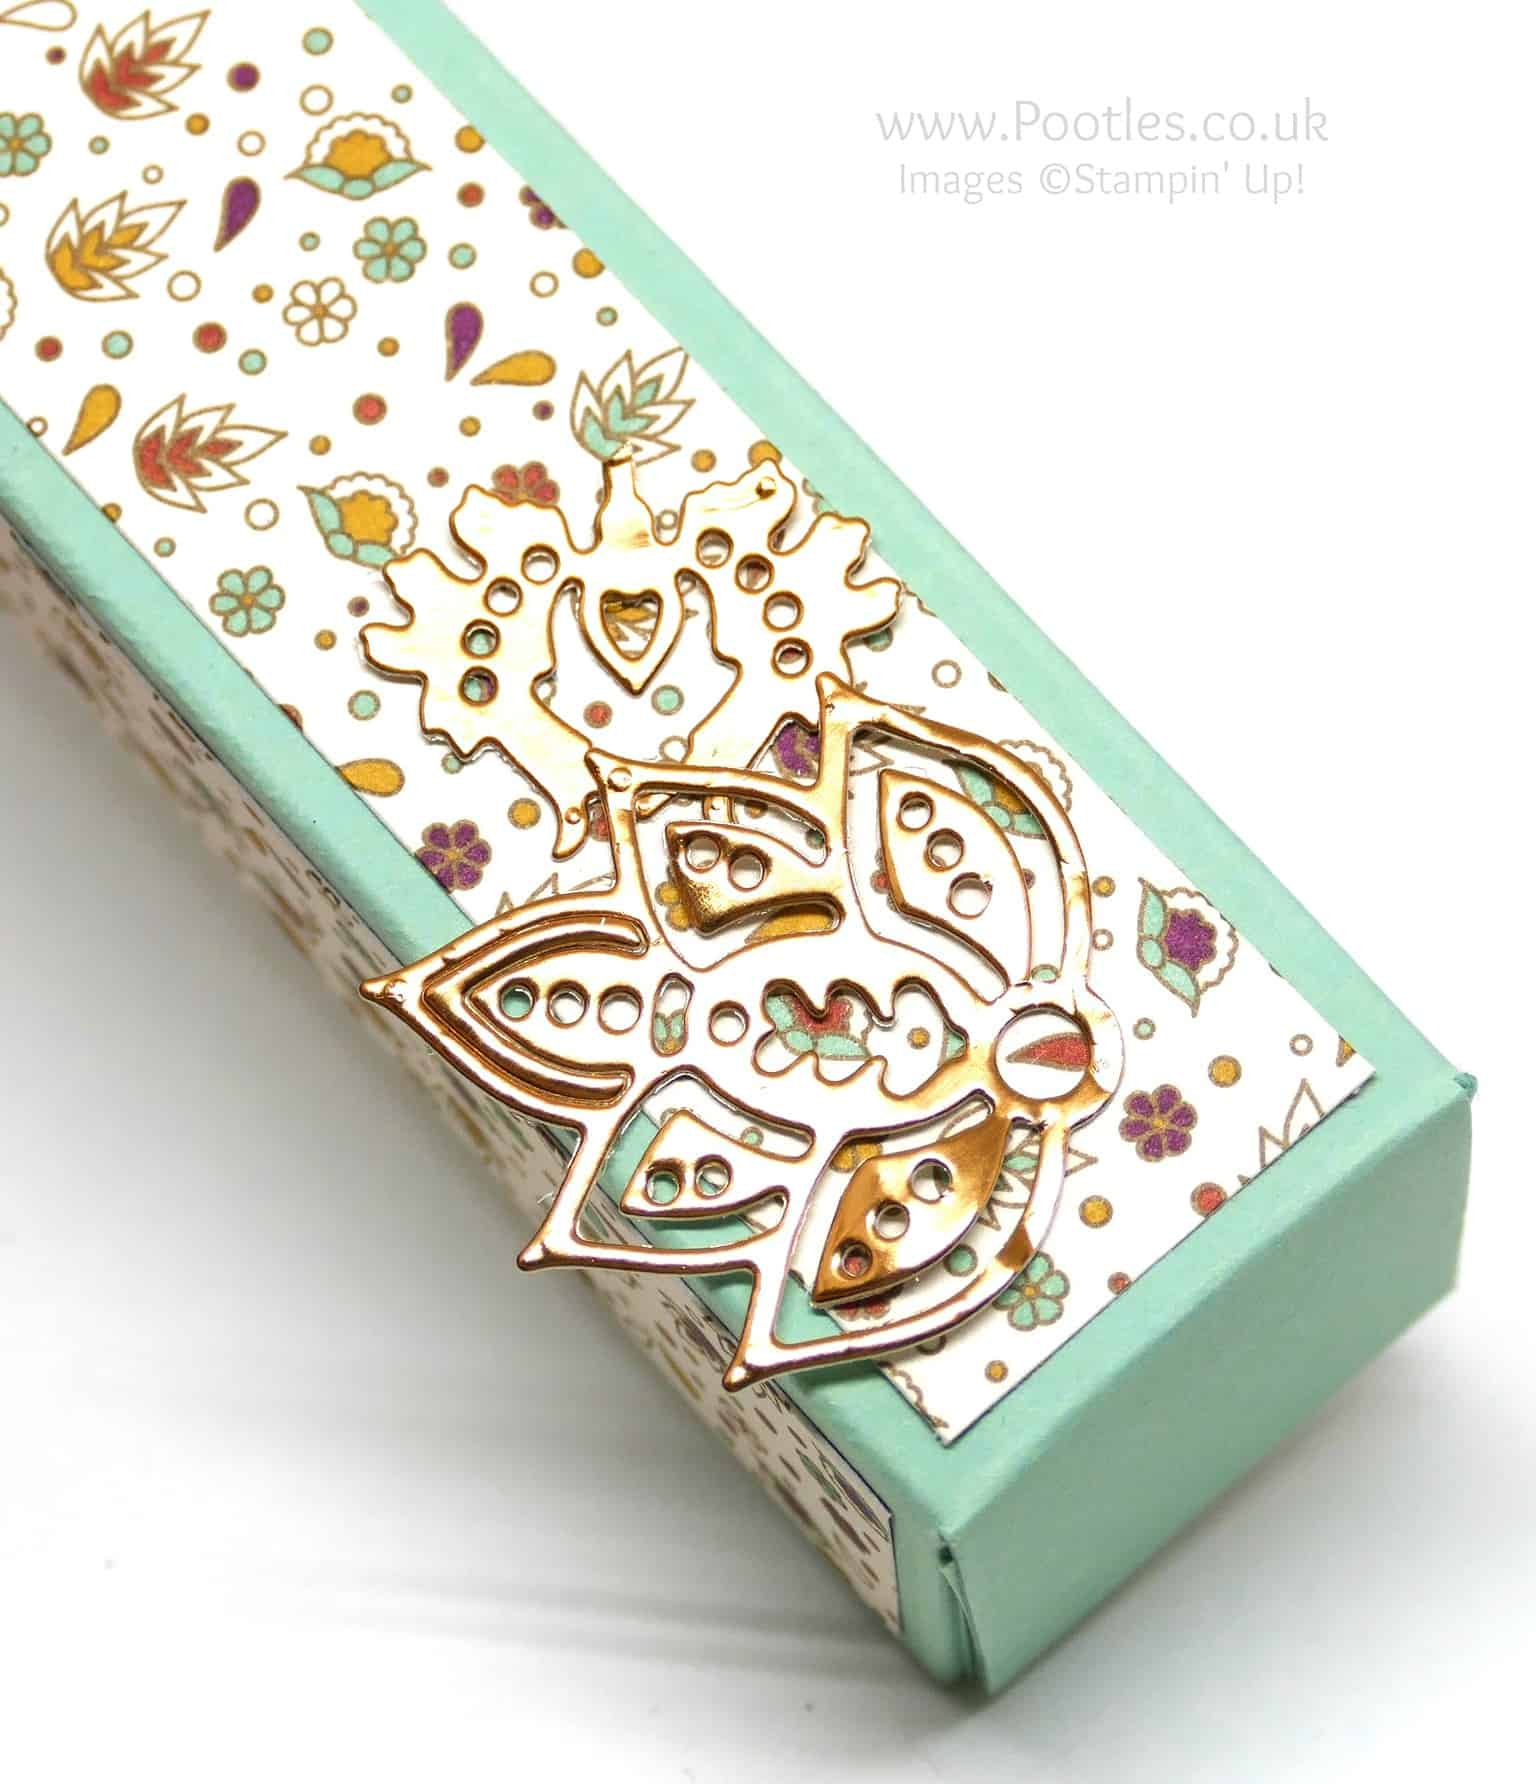 Tall Slender Pretty Box using Petals & Paisleys